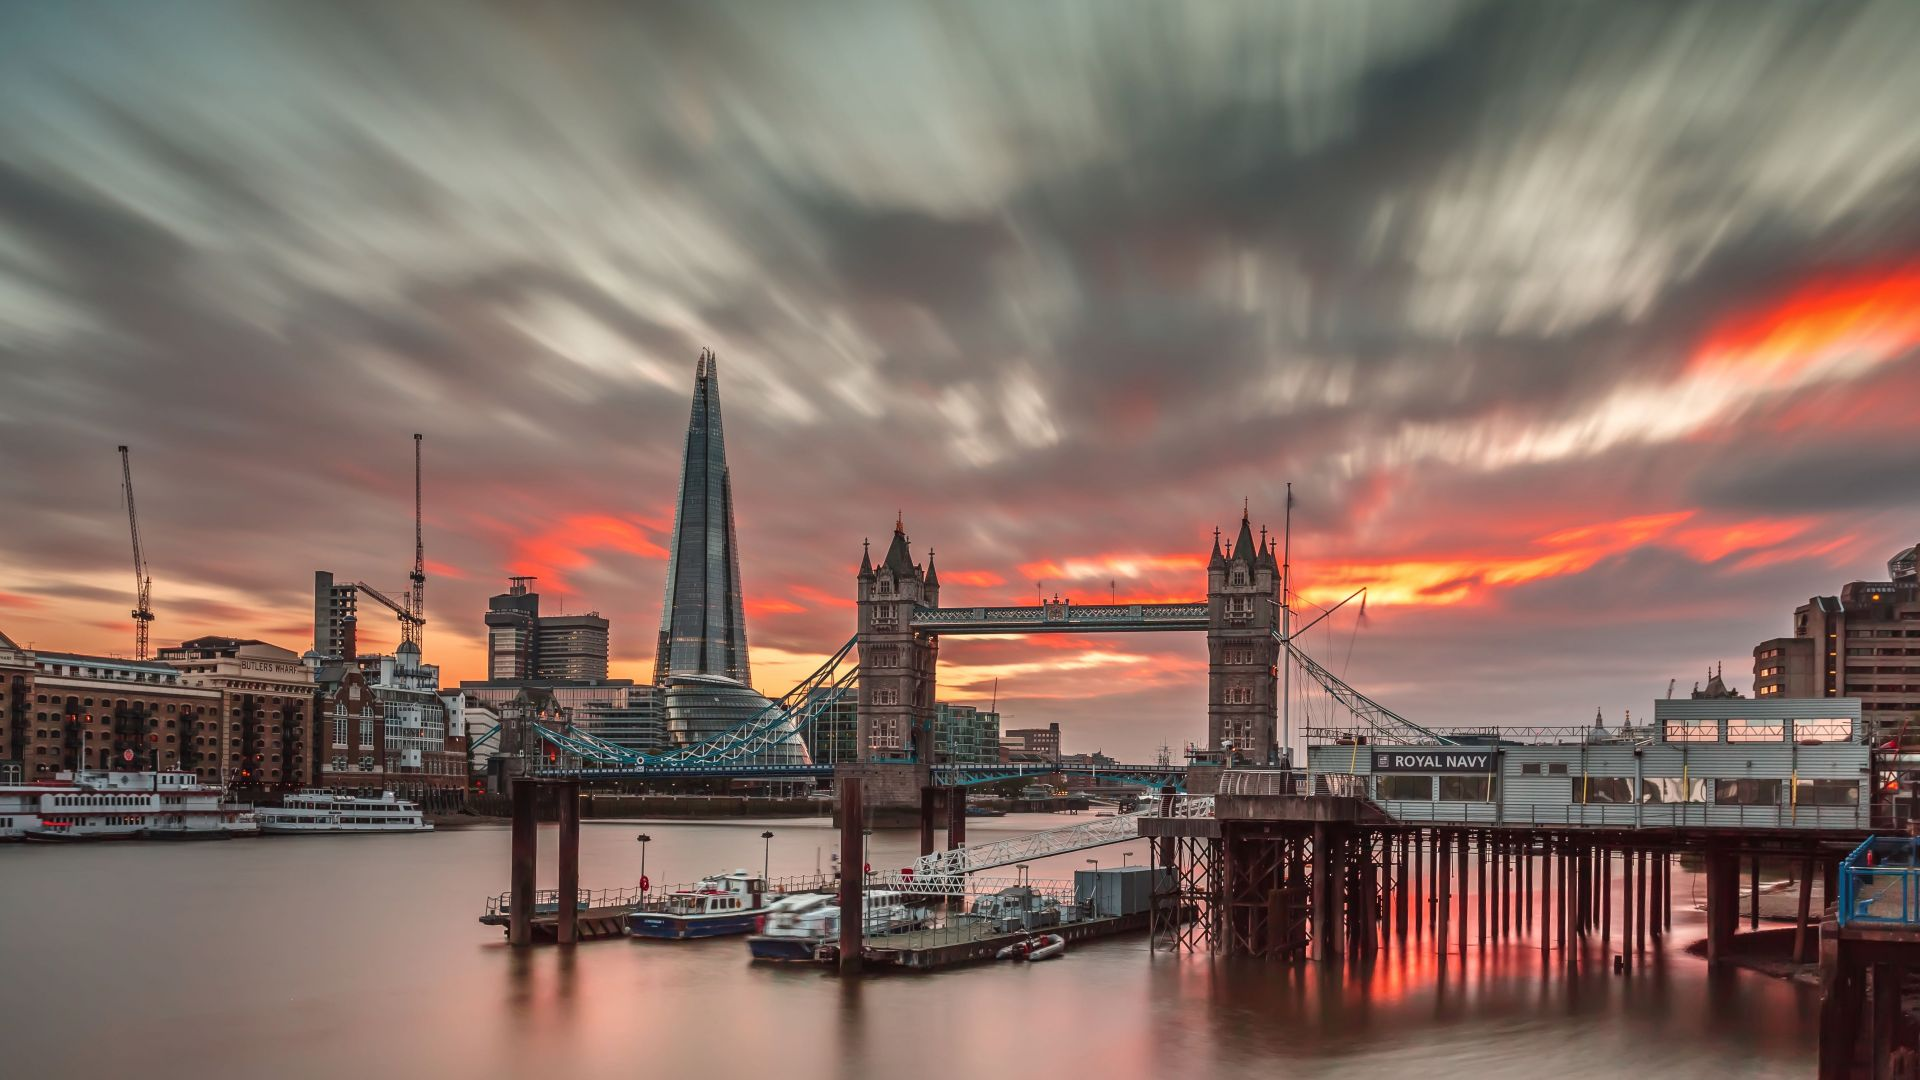 Лоднон, Англия, путешествие, туризм, закат, London, England, travel, tourism, sunset (horizontal)